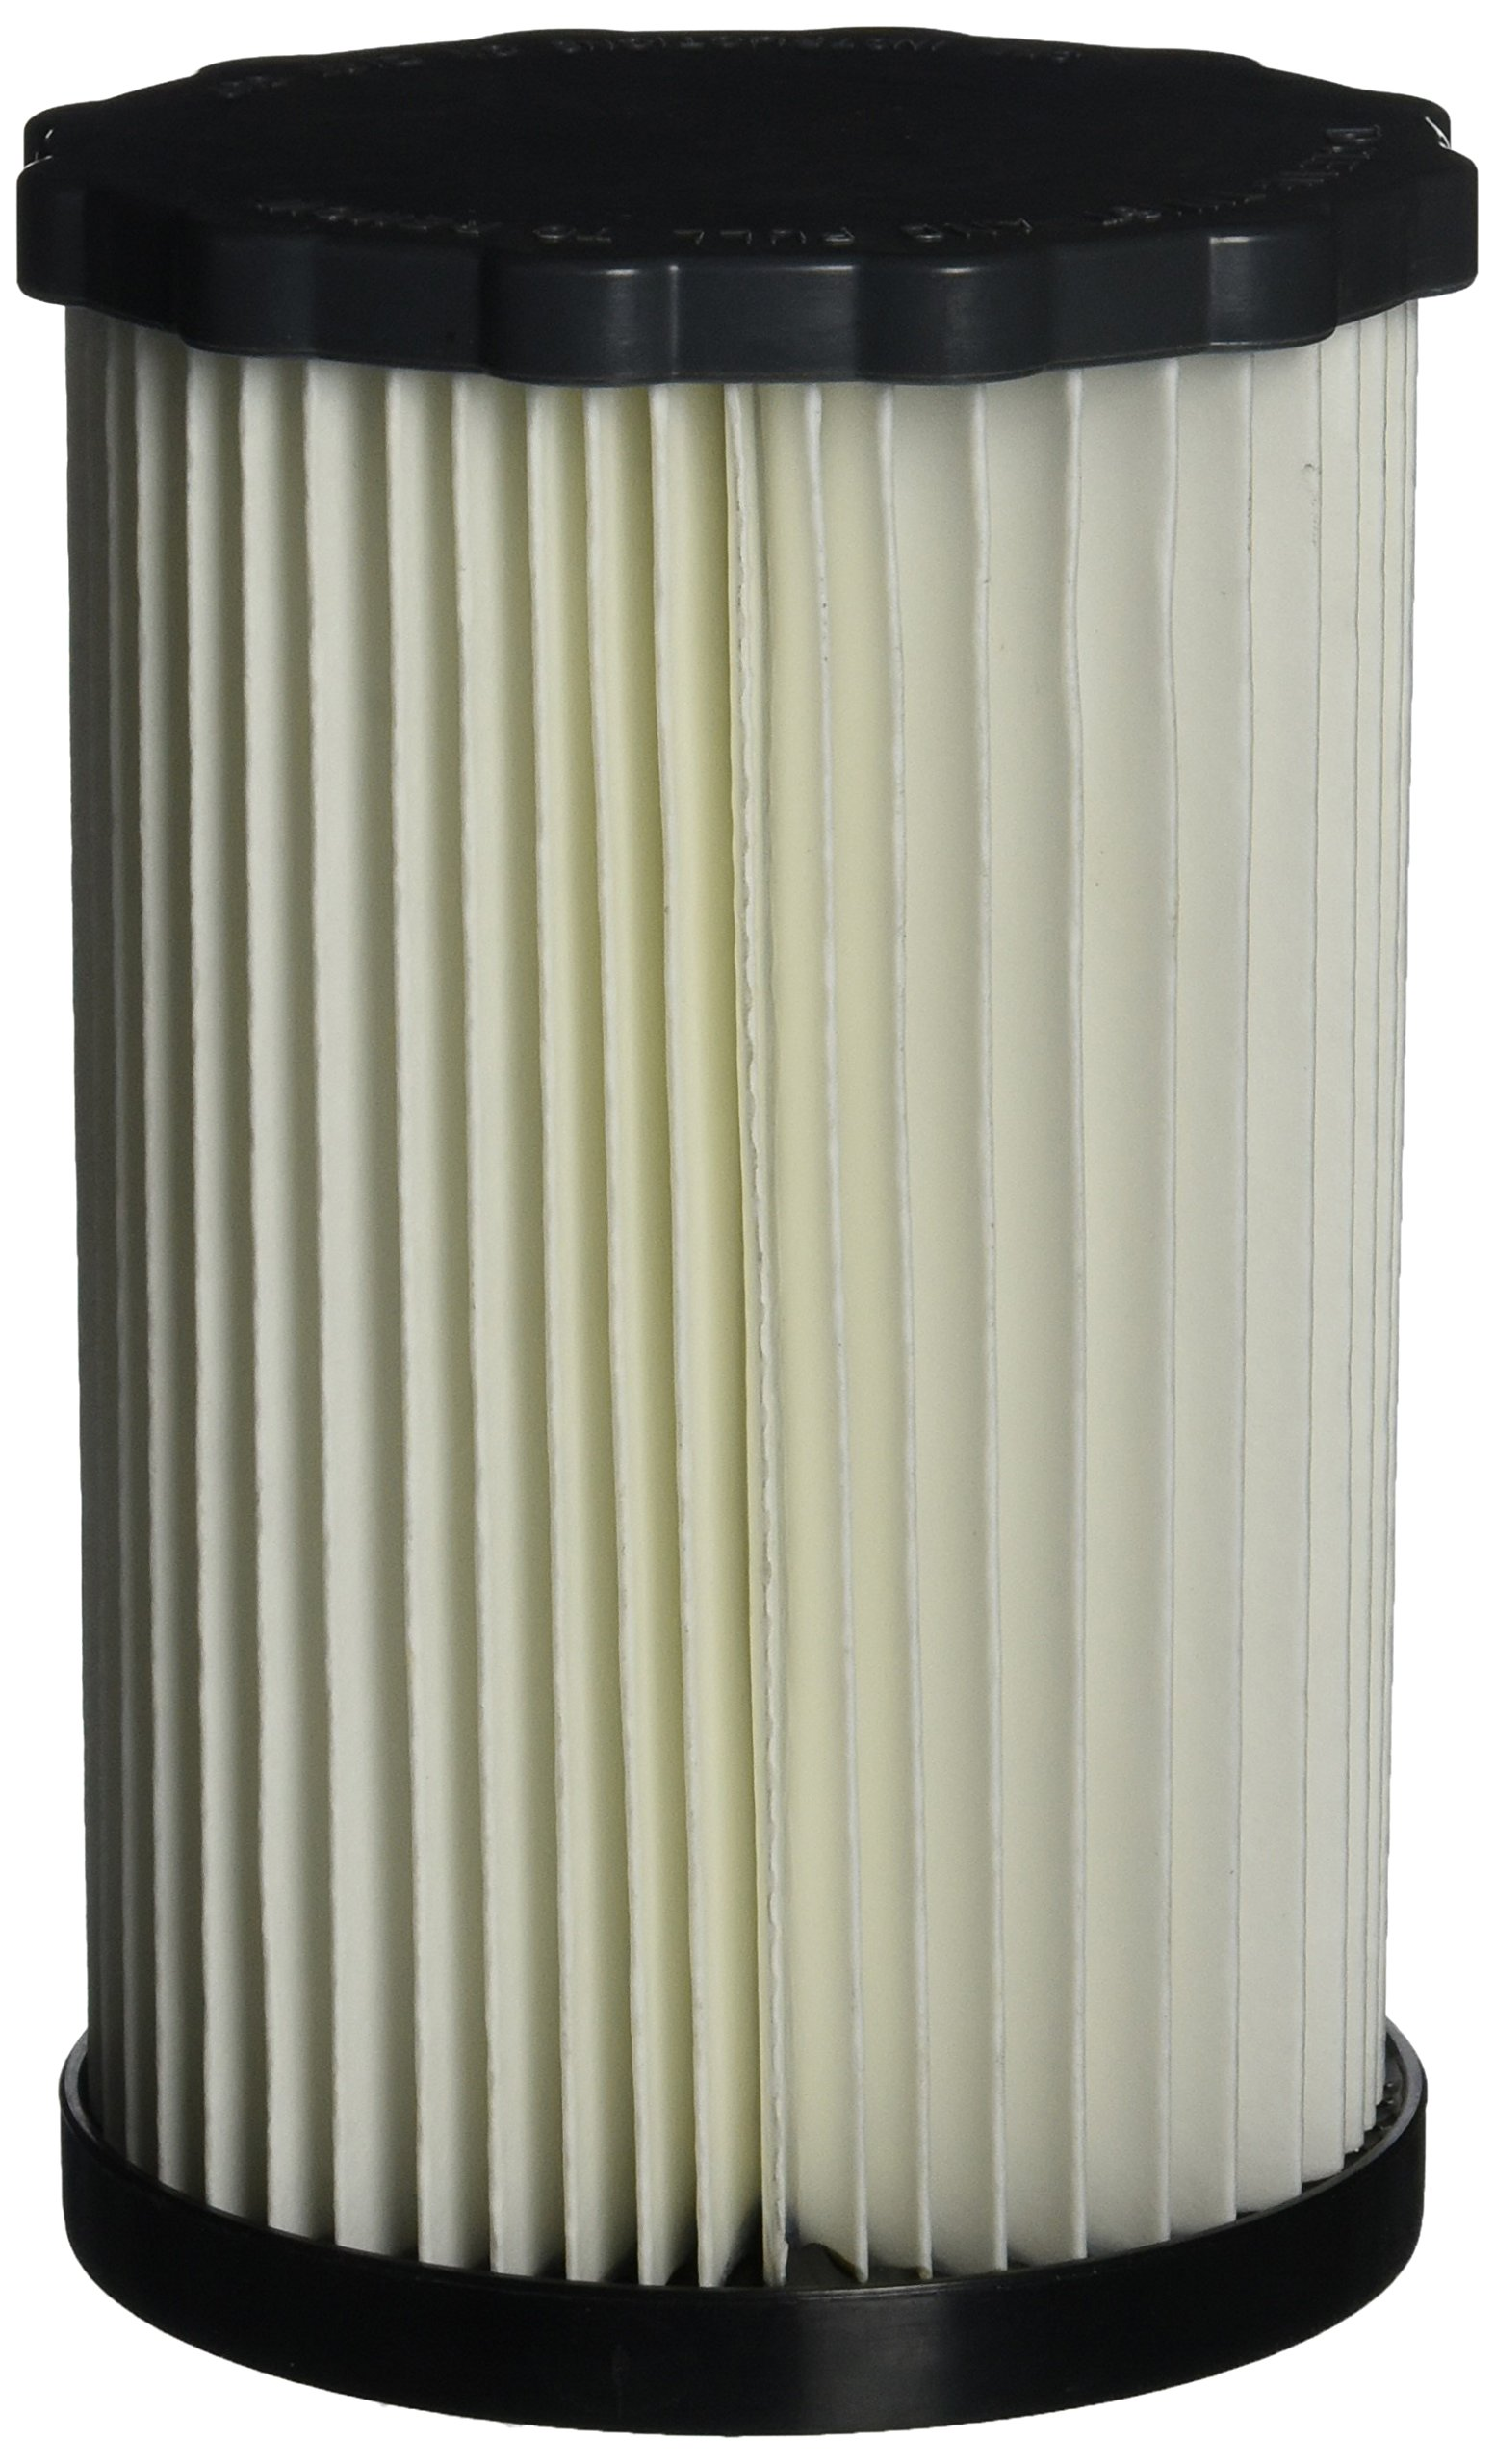 Filter, F3 Round Pleated Dirt Cup 082500/SD40005